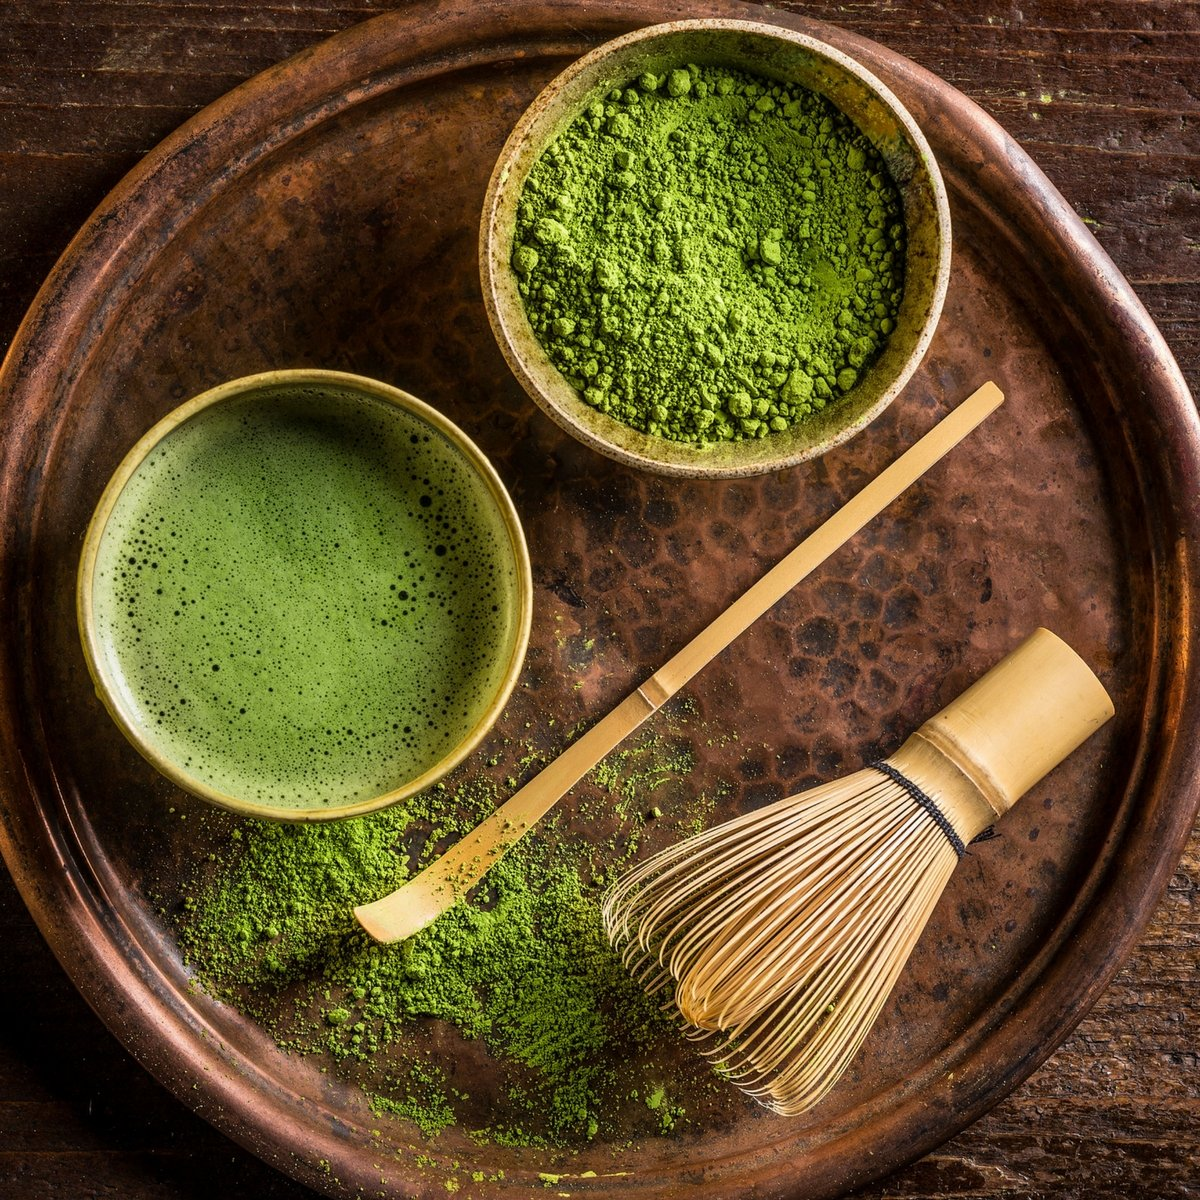 Top 5 Amazing Benefits Of Matcha You'll Instantly Feel